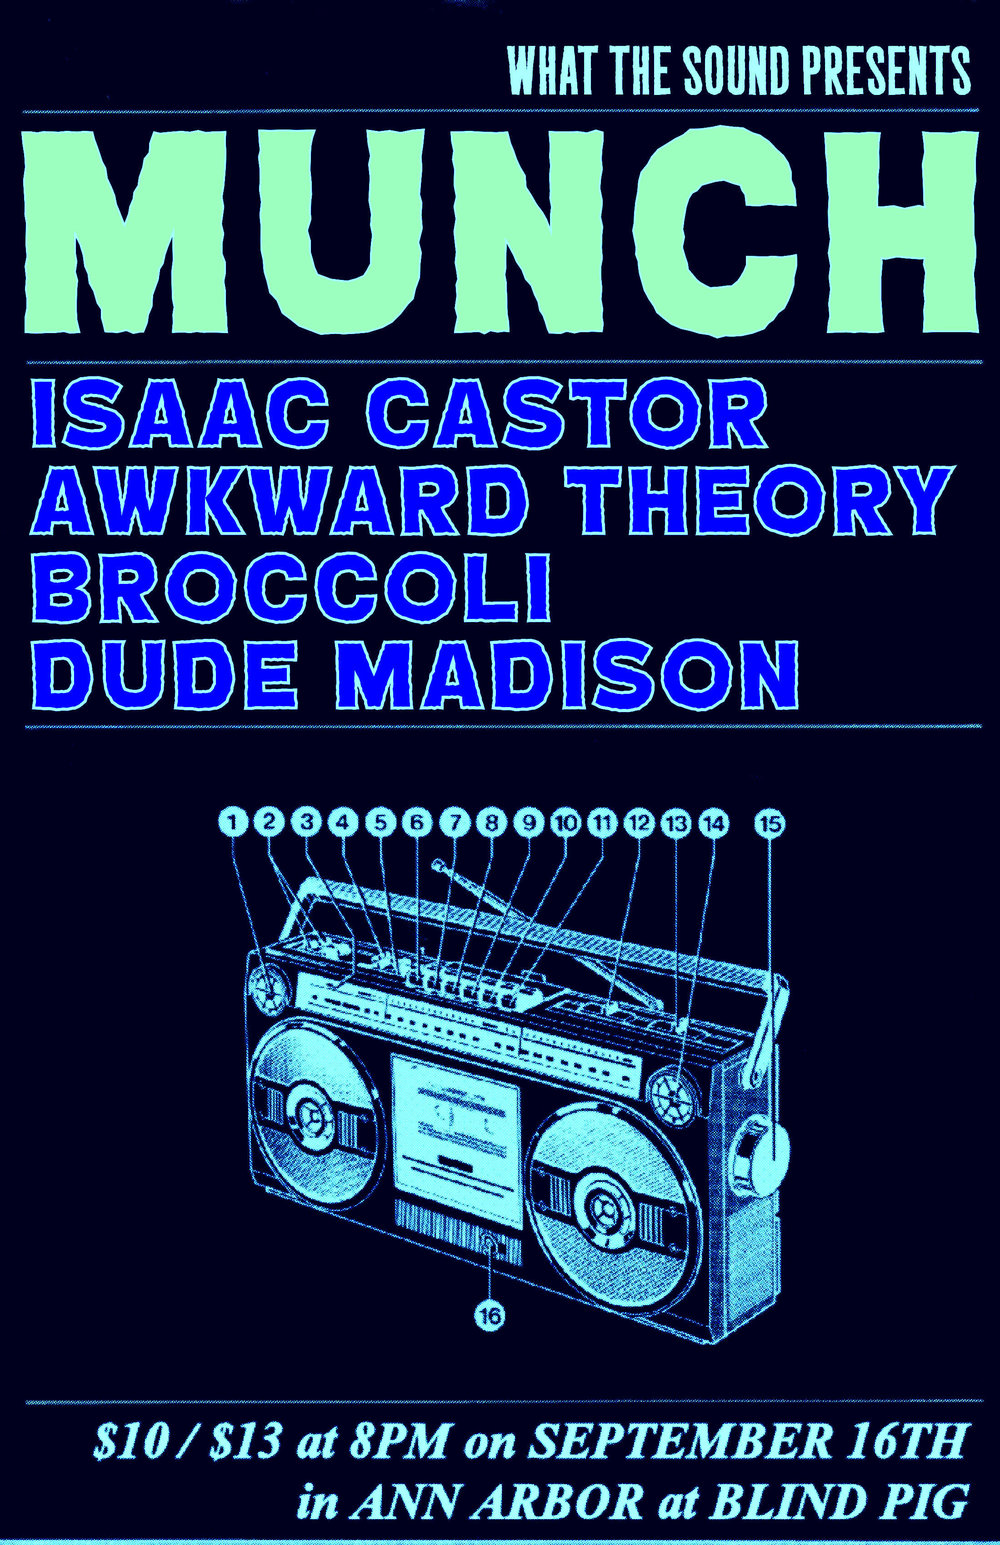 Munch / Isaac Castor / Awkward Theory / Broccoli / Dude Madison  - Artwork by Ben Redder  September 16th, 2016 at Blind Pig